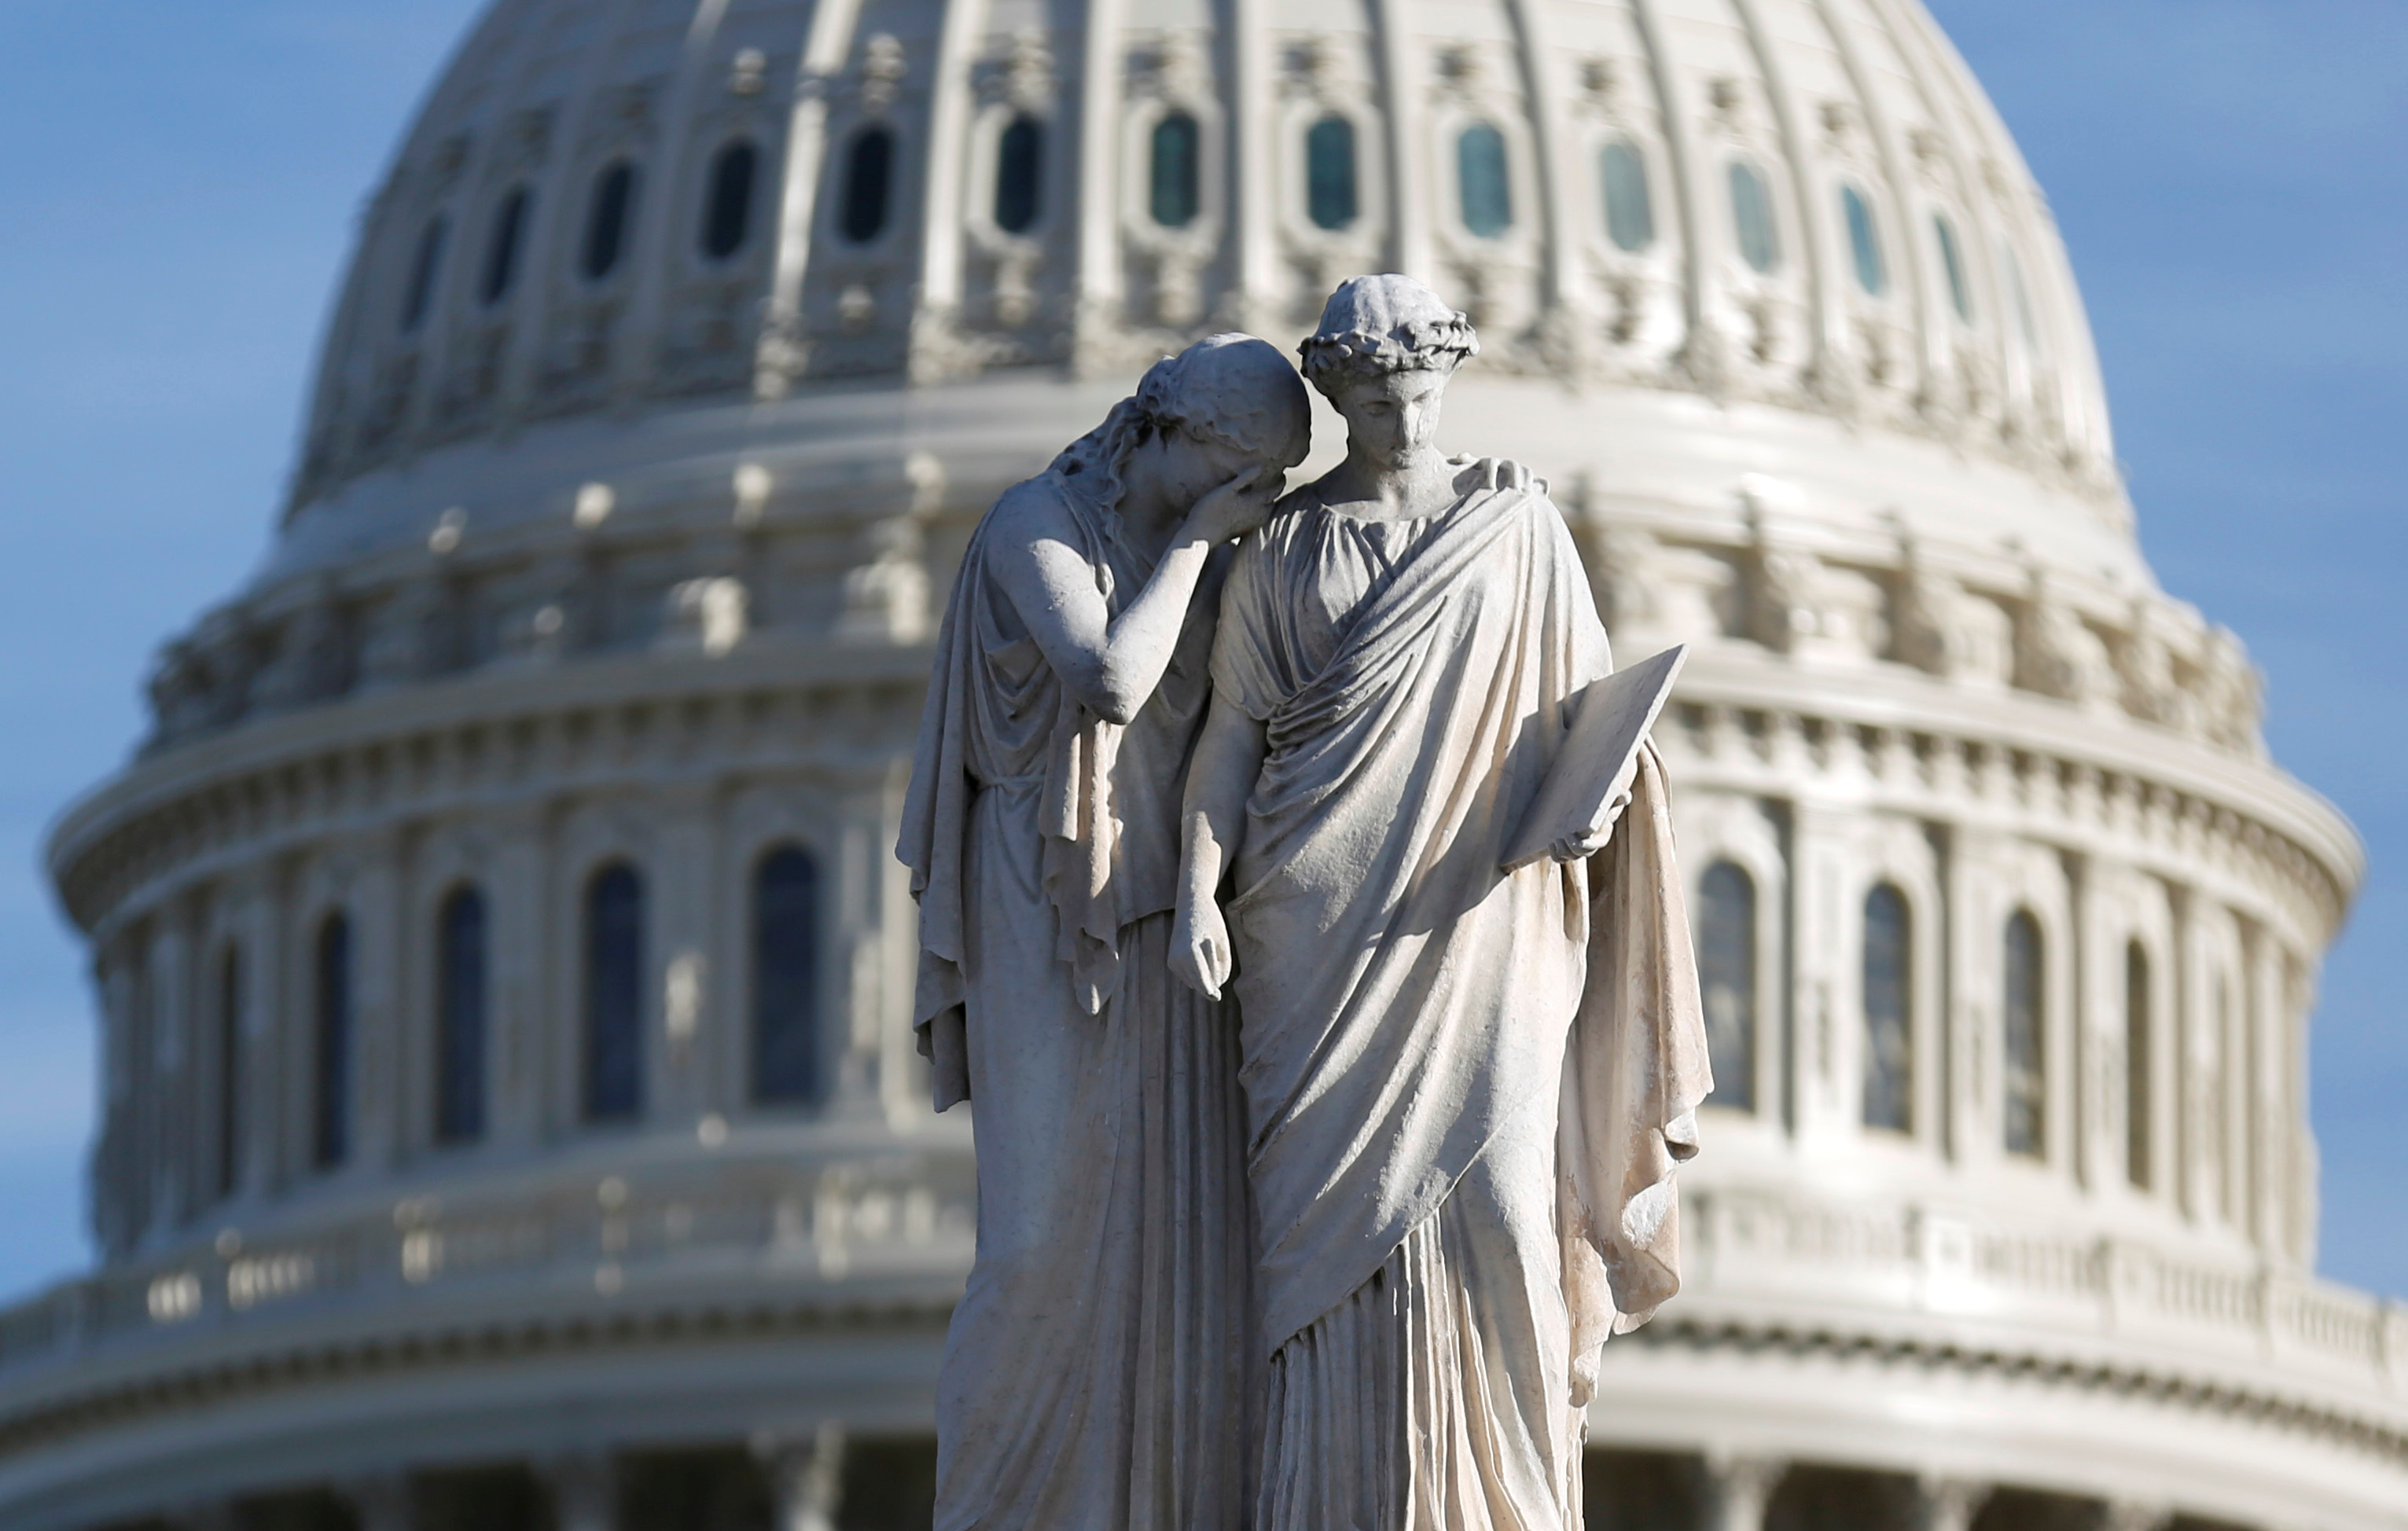 The figures of Grief and History stand on top of the Peace Statue near the U.S. Capitol after President Donald Trump and the U.S. Congress failed to reach a deal on funding for federal agencies in Washington, U.S., January 20, 2018.      REUTERS/Joshua Roberts - RC1F1DB11260